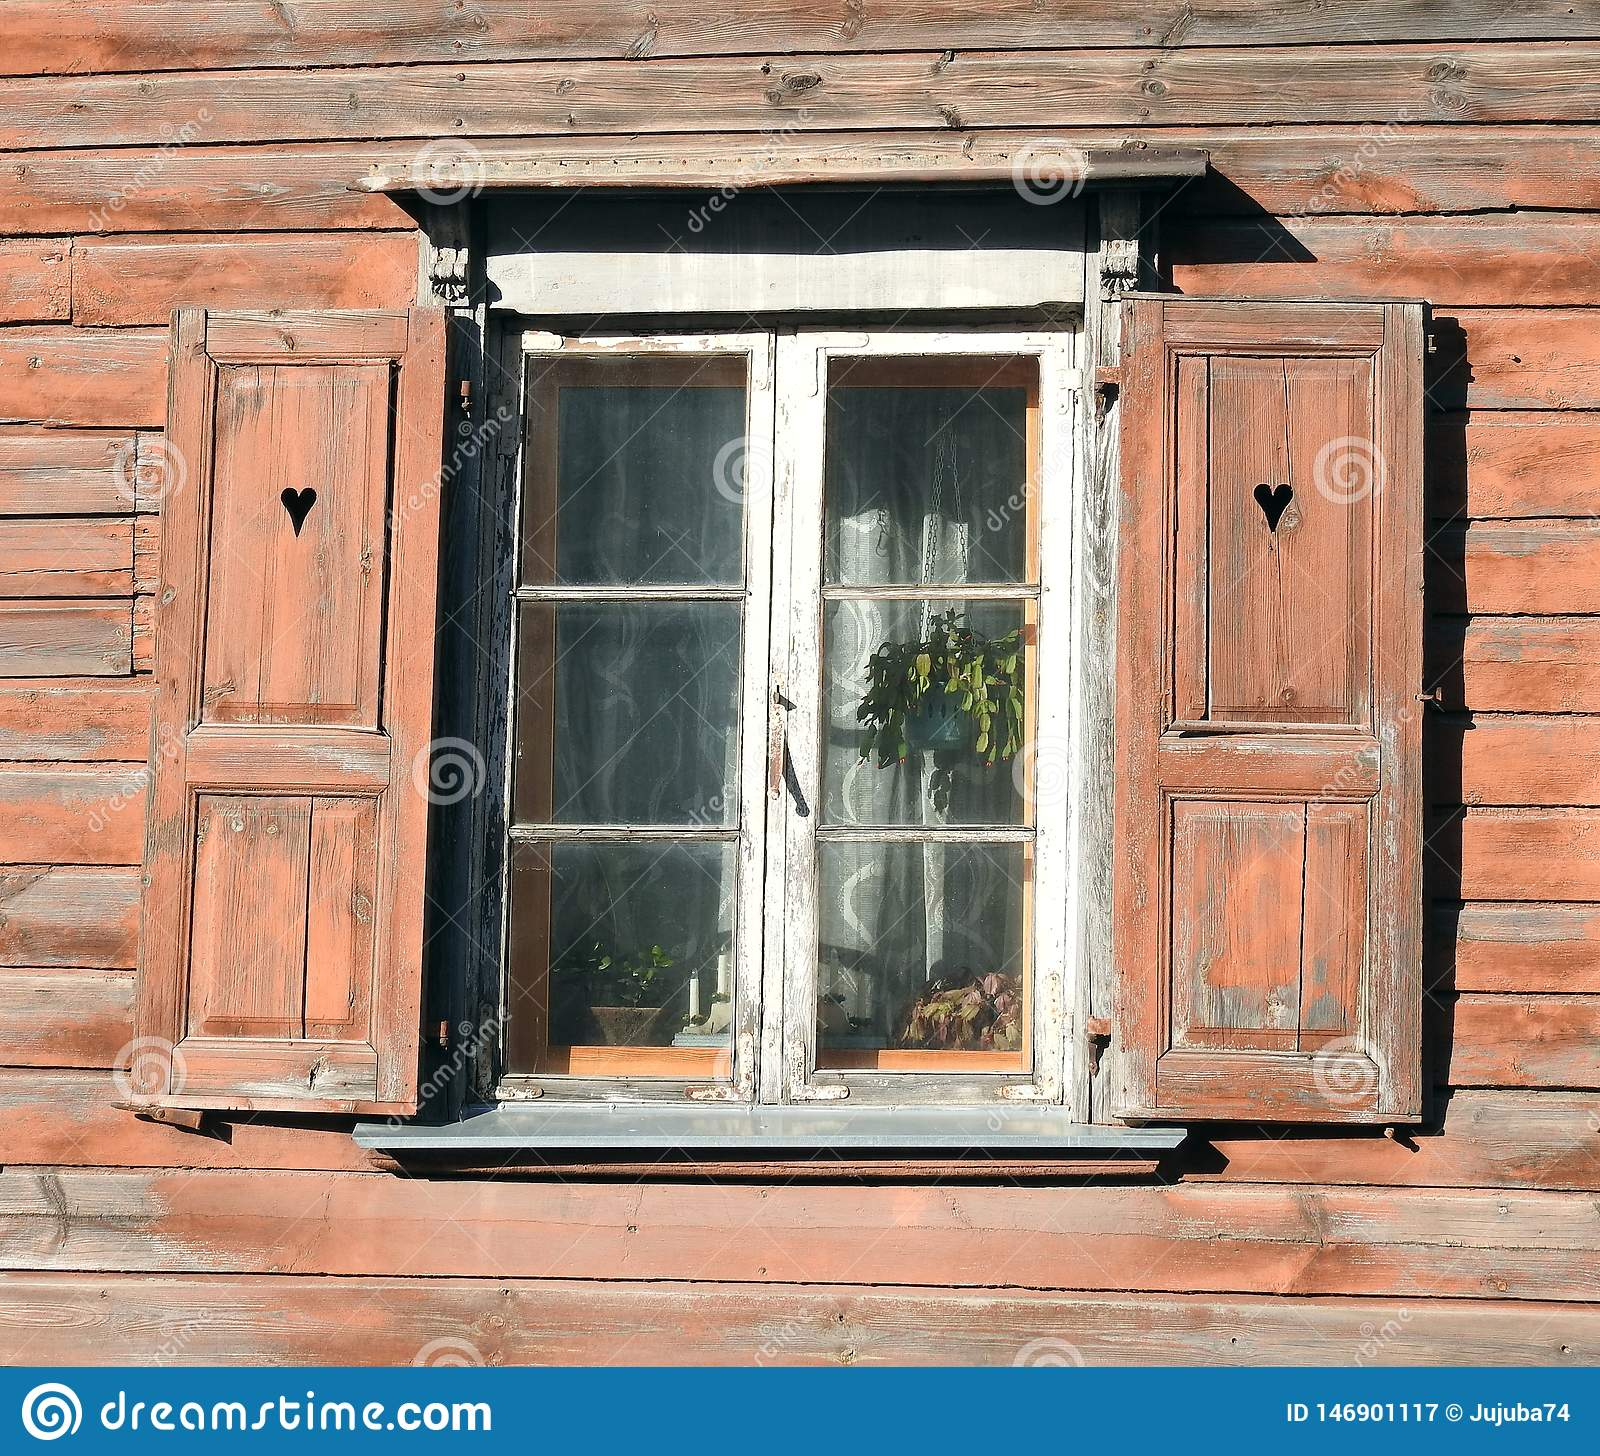 Old home wall and window, Latvia